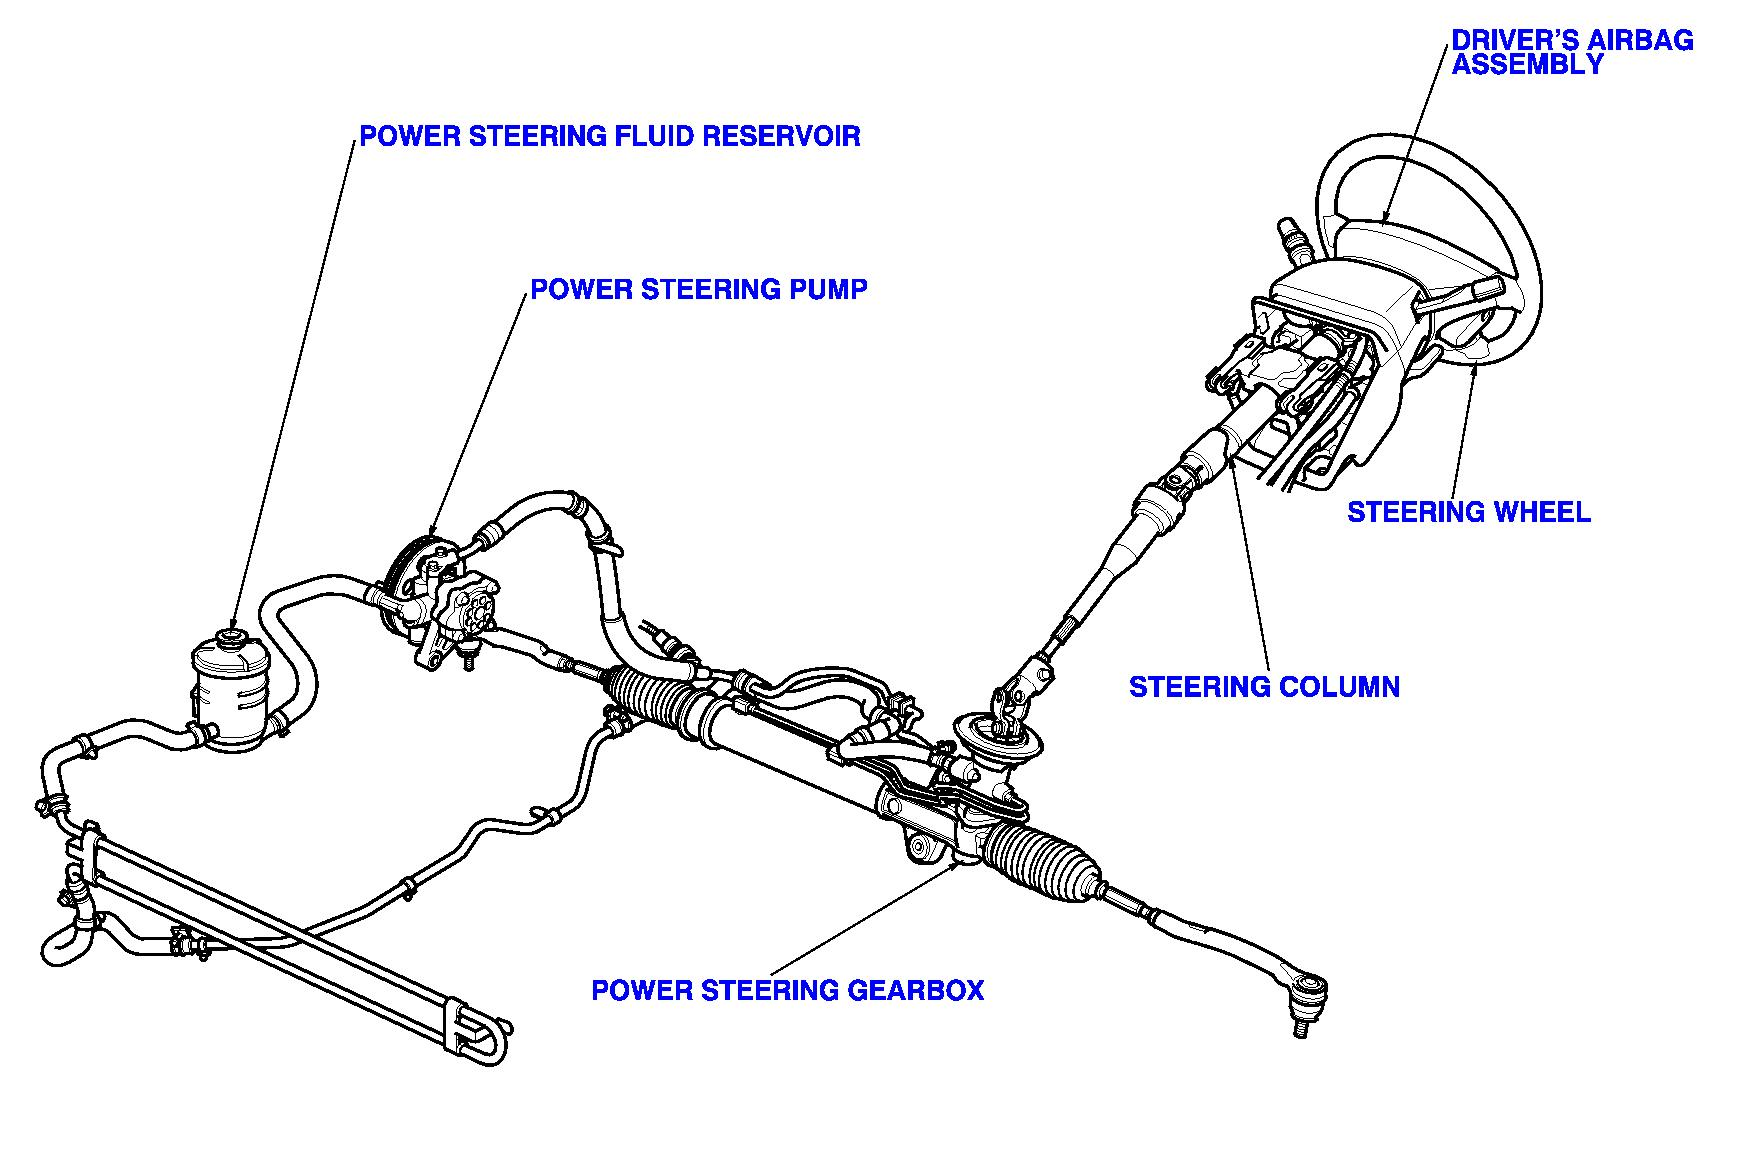 2003 Bmw 325i Power Steering Pump Diagram Reveolution Of Wiring 330i Wire Experts U2022 Rh Evilcloud Co Uk Fluid E30